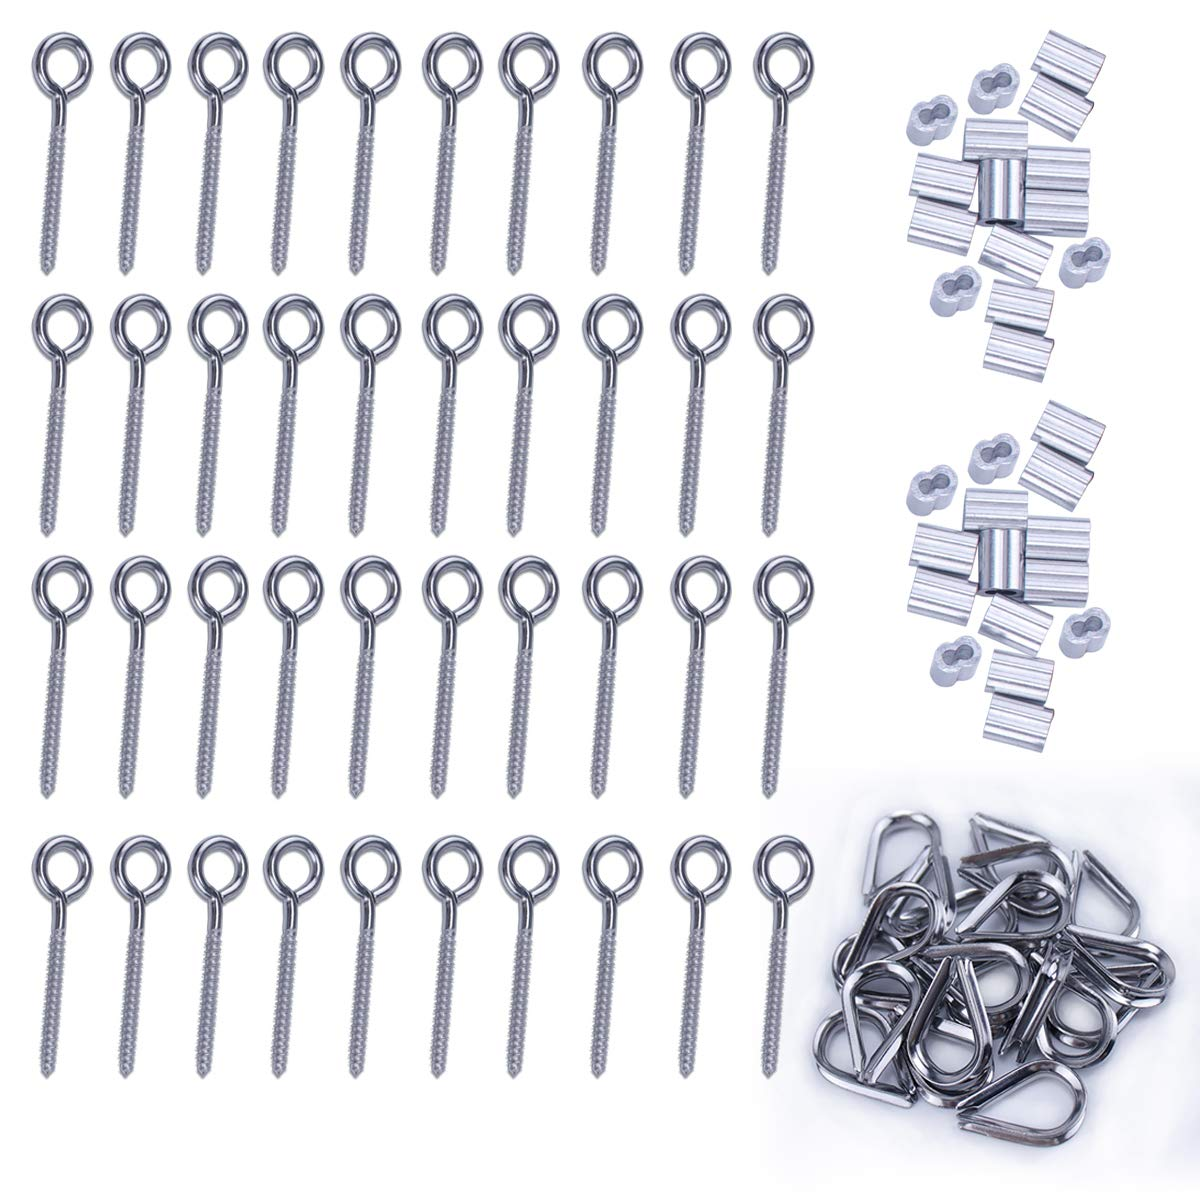 Muzata 1/8'' Wire Rope Cable Kit,Inluded M6 Stainless Steel Eyes Screw 40Pcs,M3 Aluminum Crimping Loop 40Pcs, M3 Stainless Steel Thimble 40Pcs